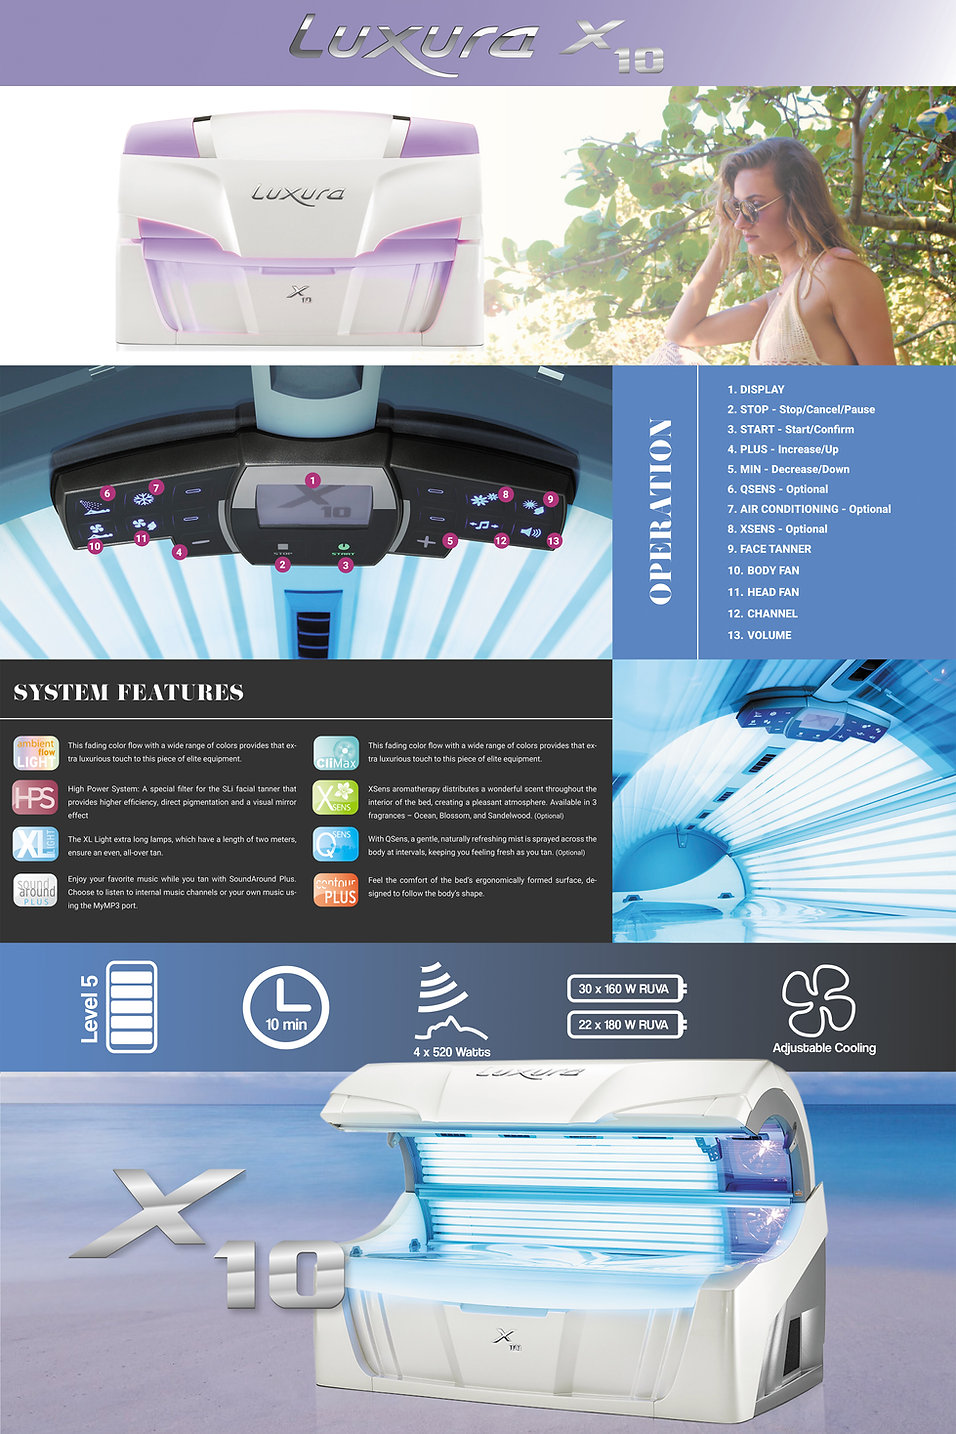 The body bakery tanning luxura x10